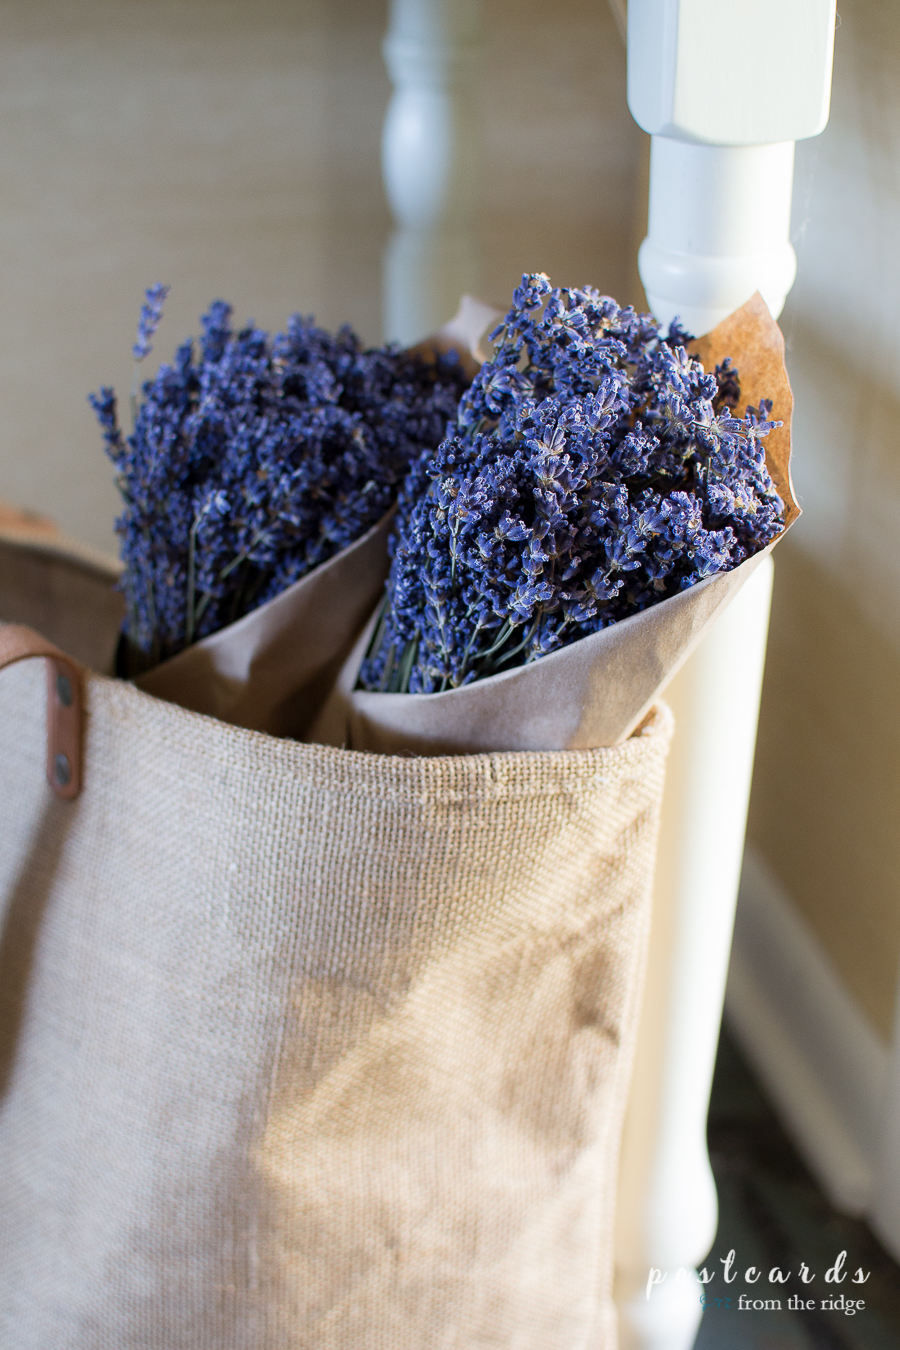 lavender bundles in a burlap tote bag